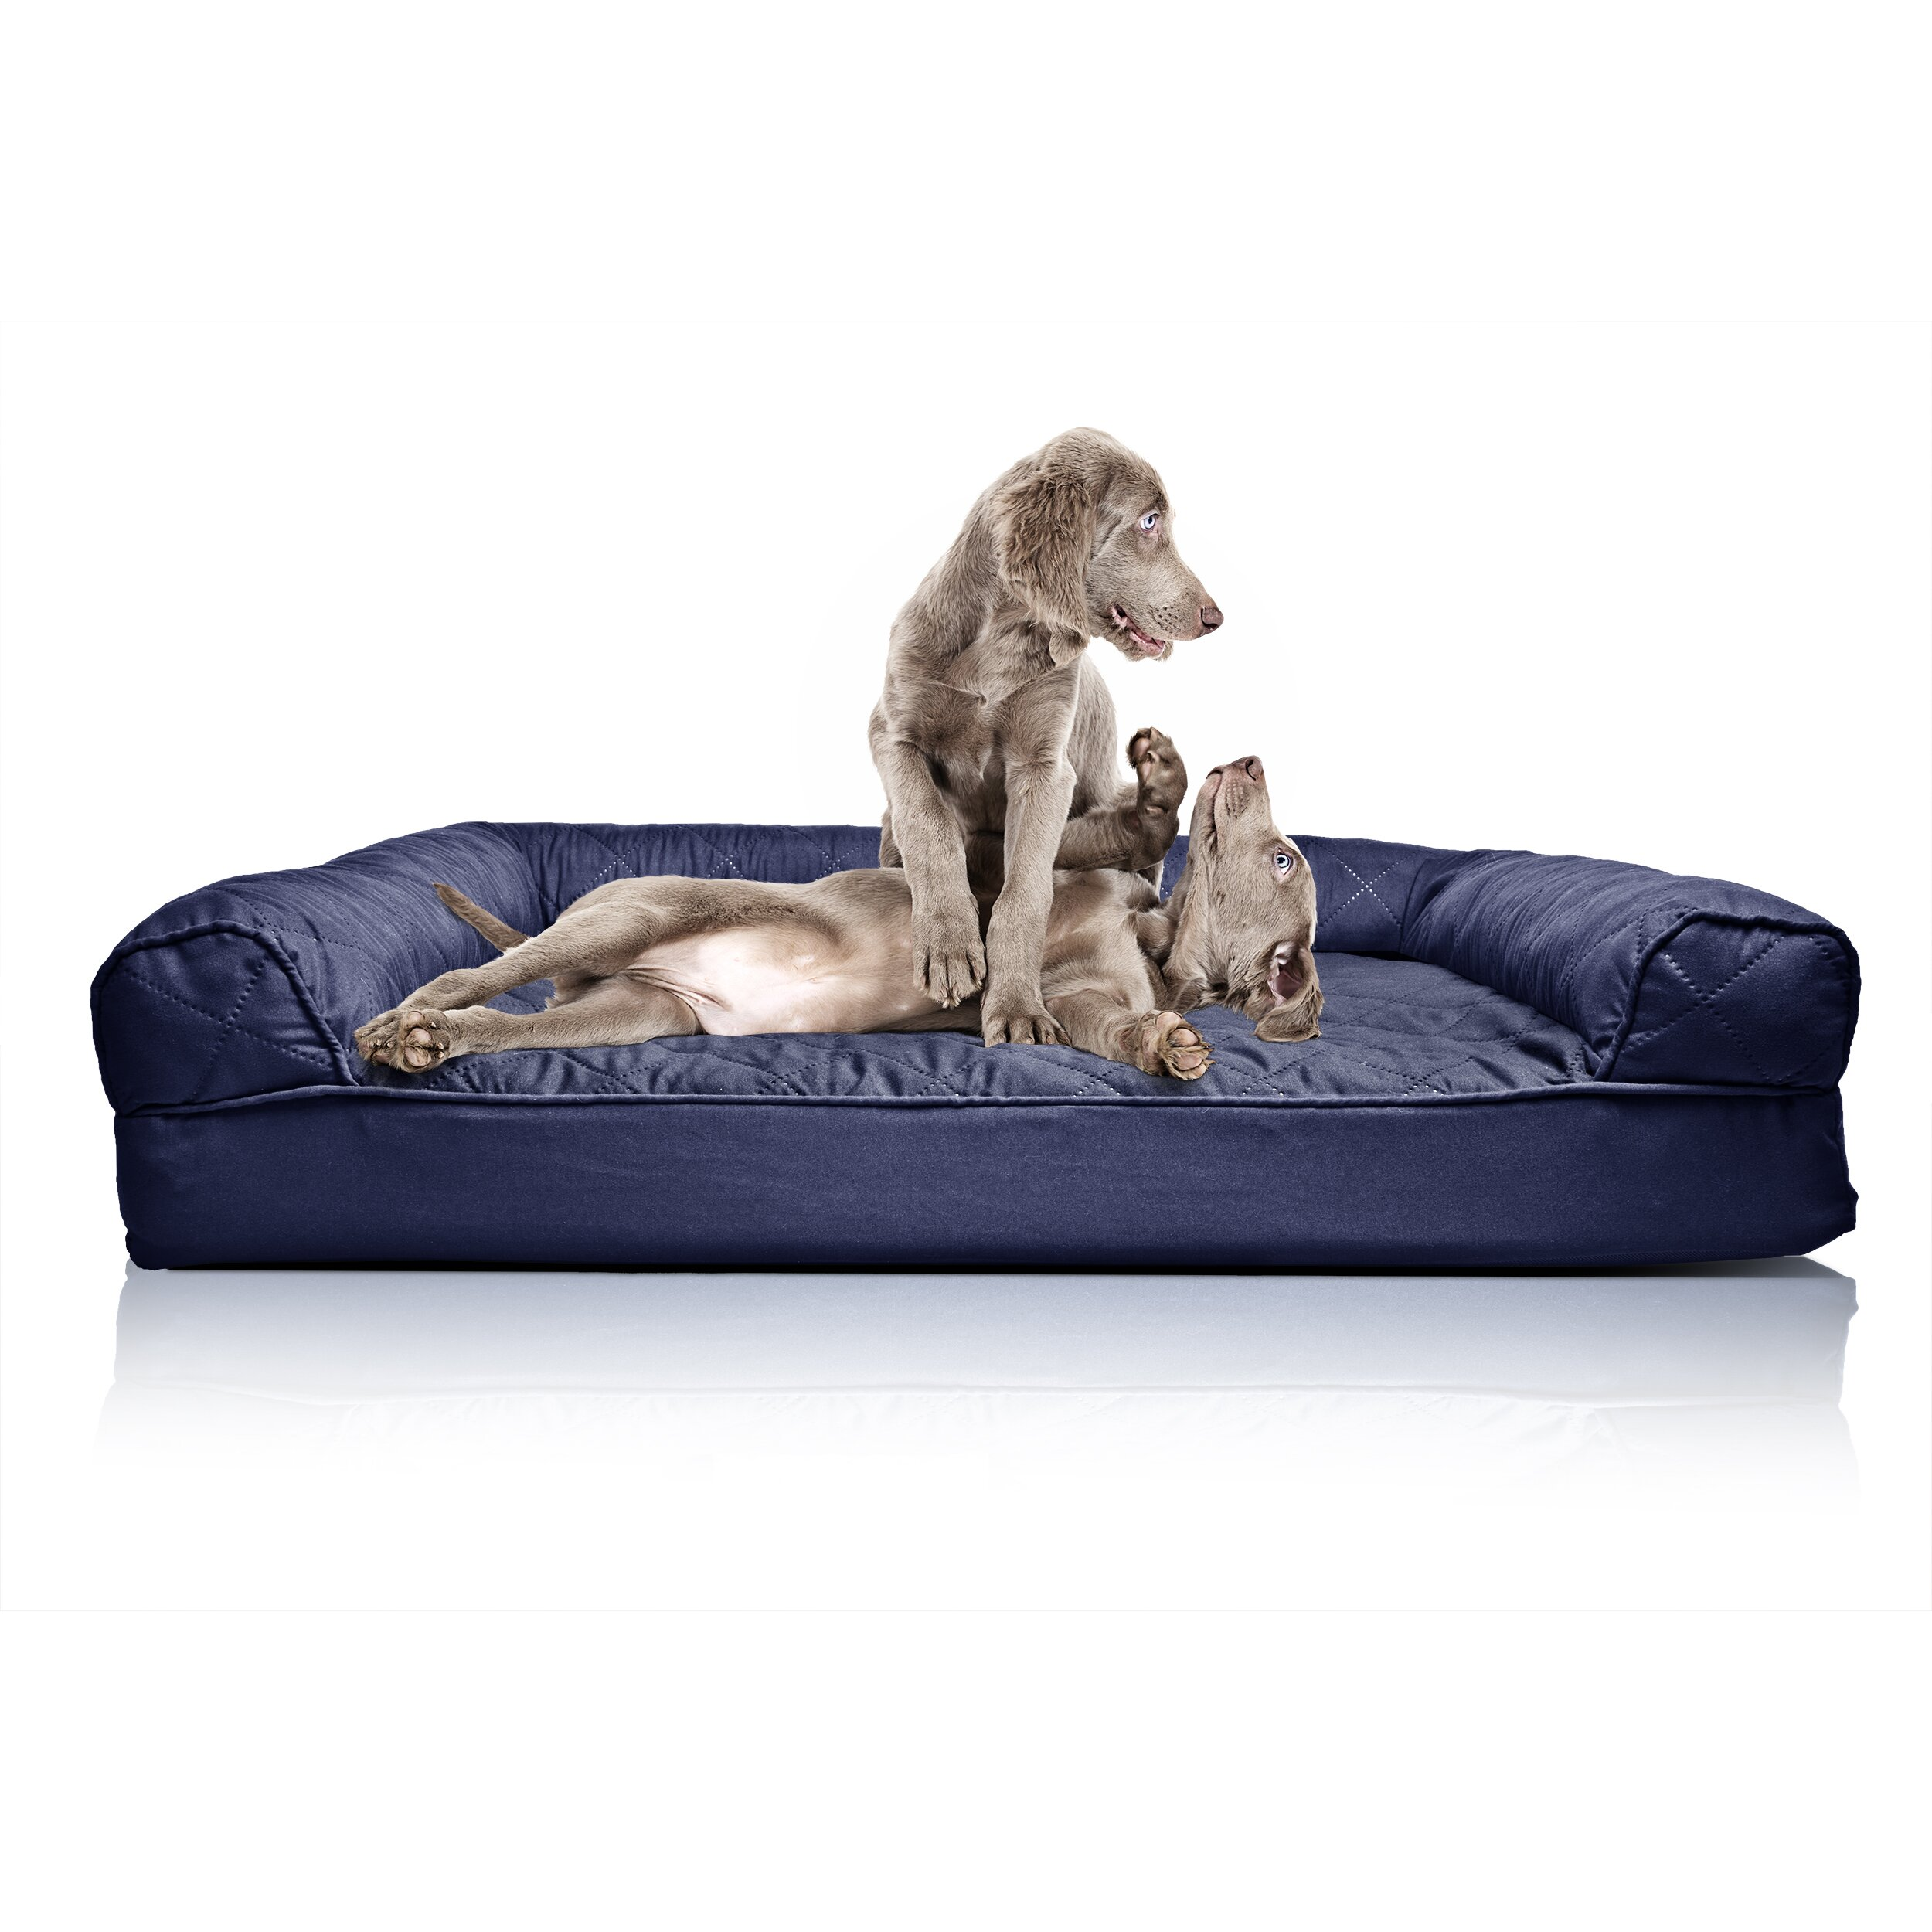 zoey tails quilted orthopedic sofa style dog bed reviews With sofa style orthopedic pet bed mattress